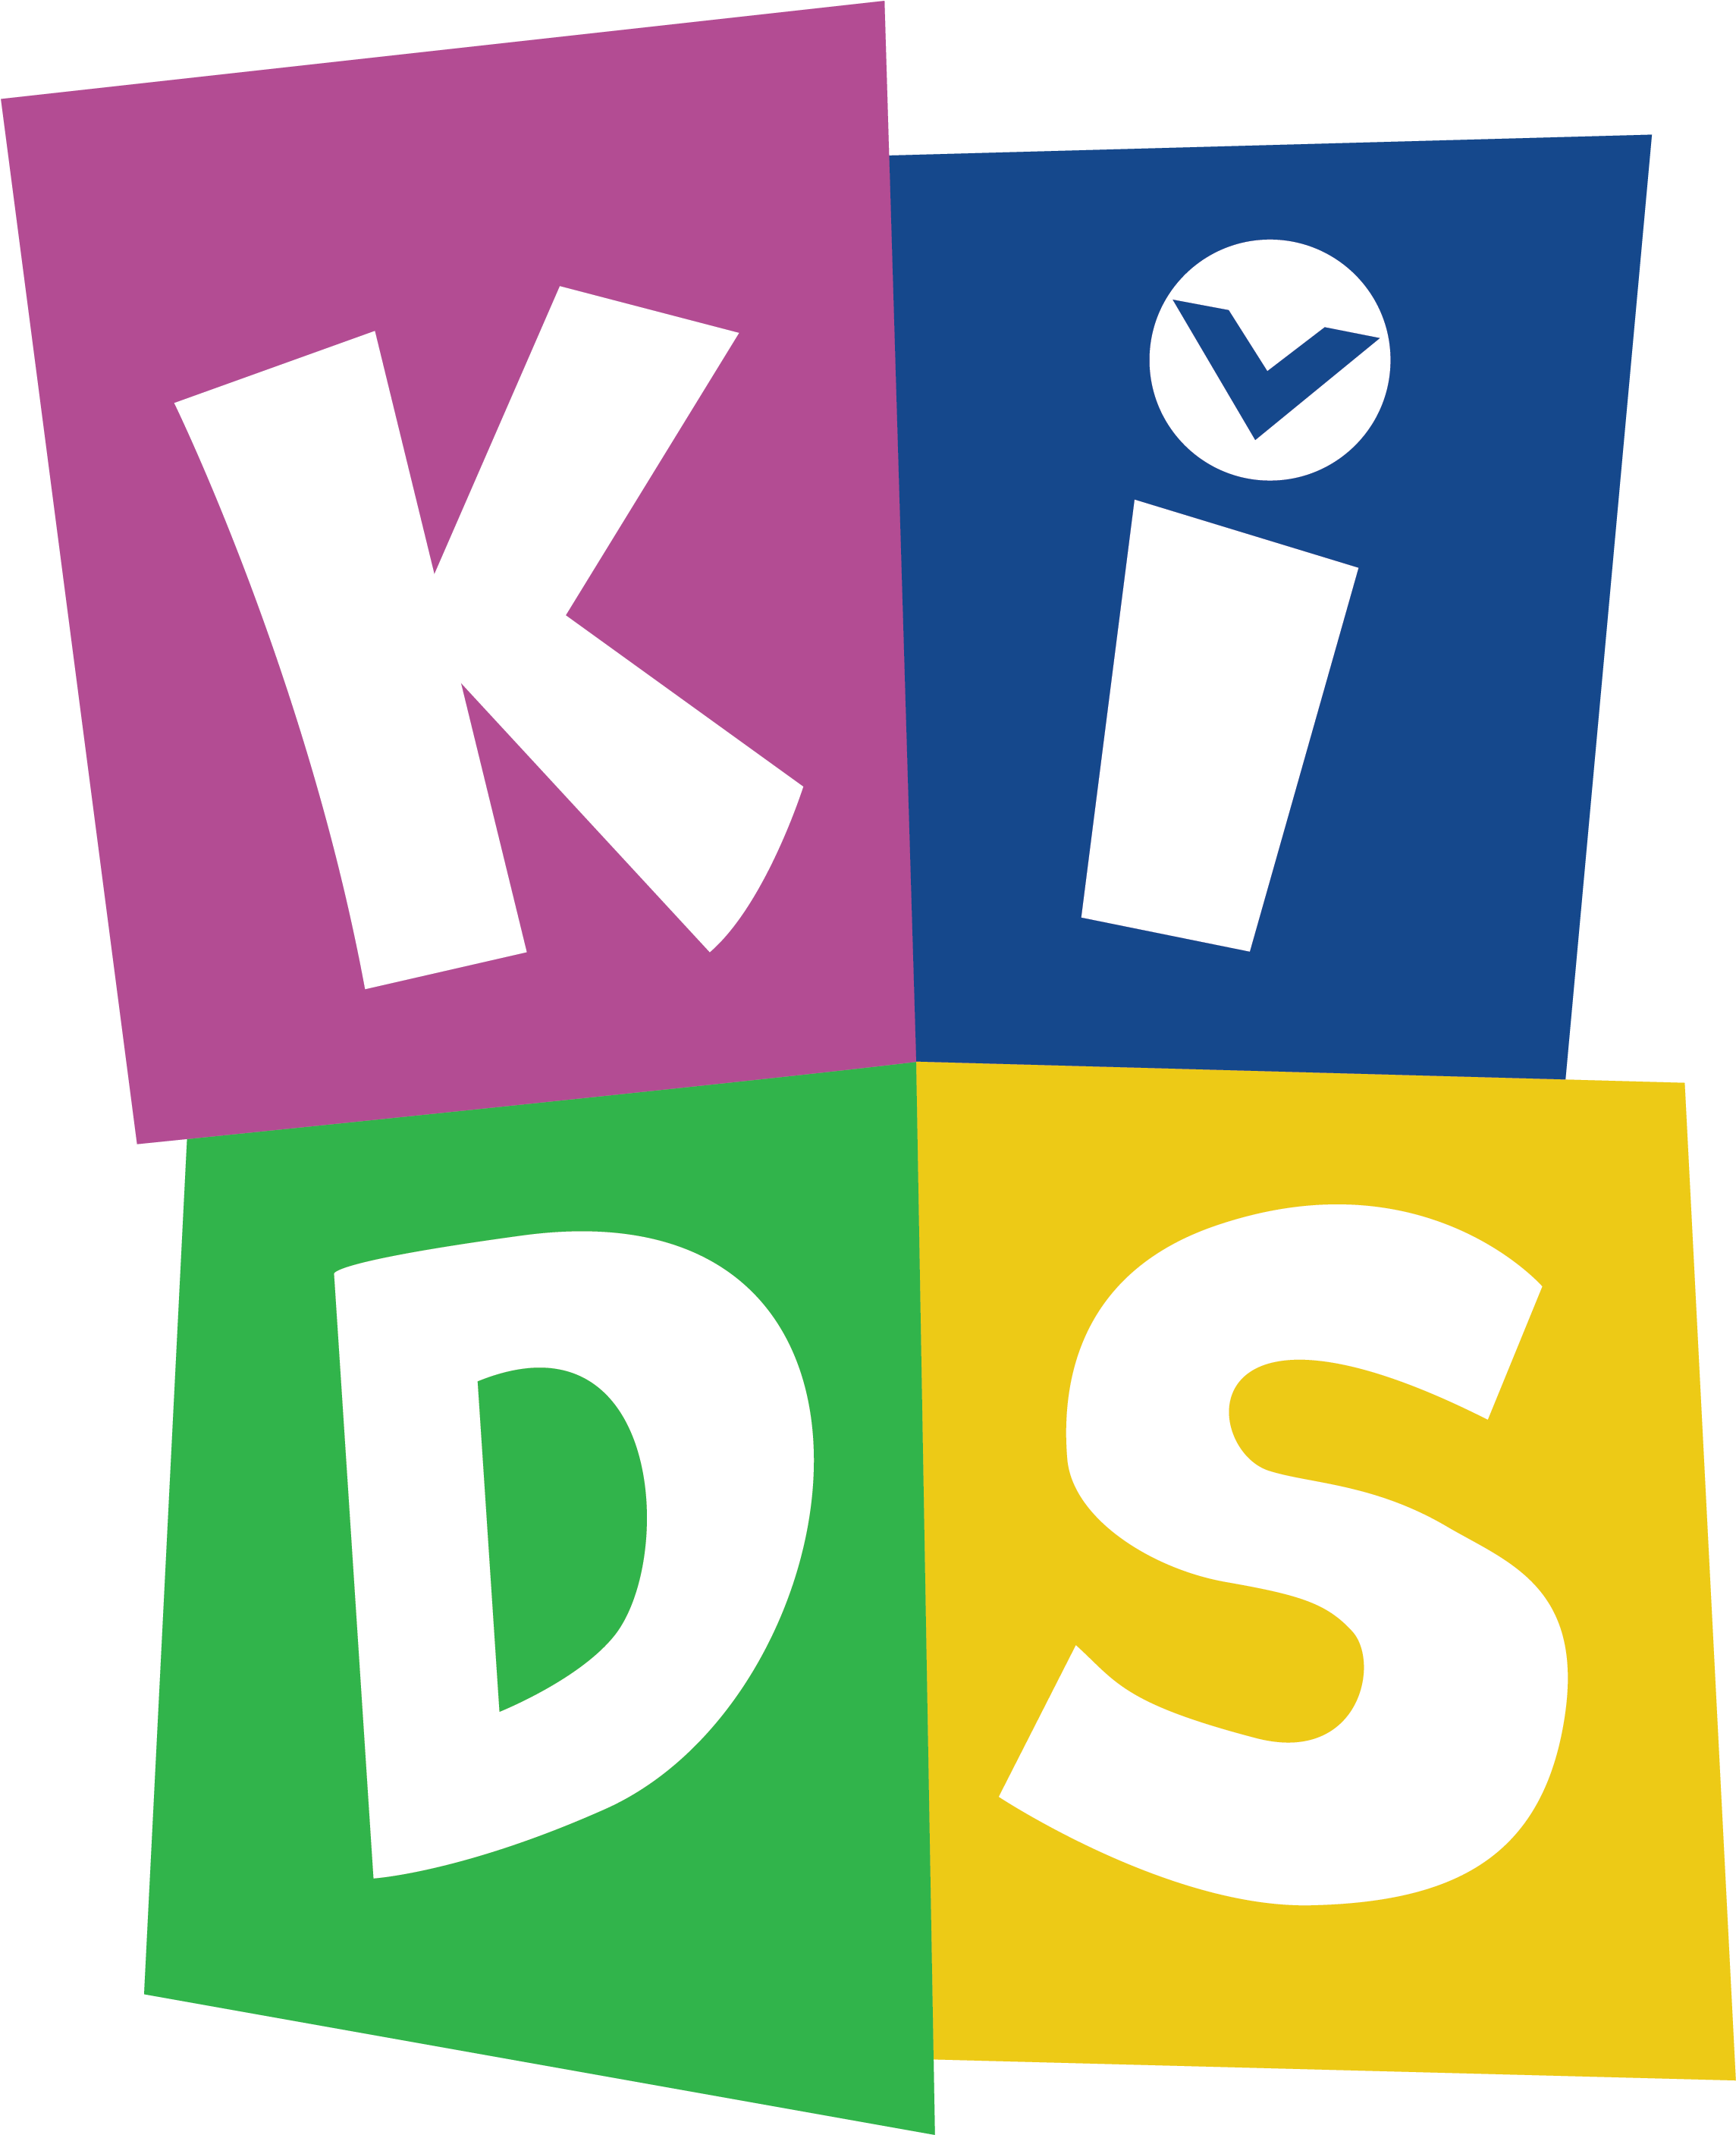 Kids Ministry - Kids Church Victory (2550x3300), Png Download